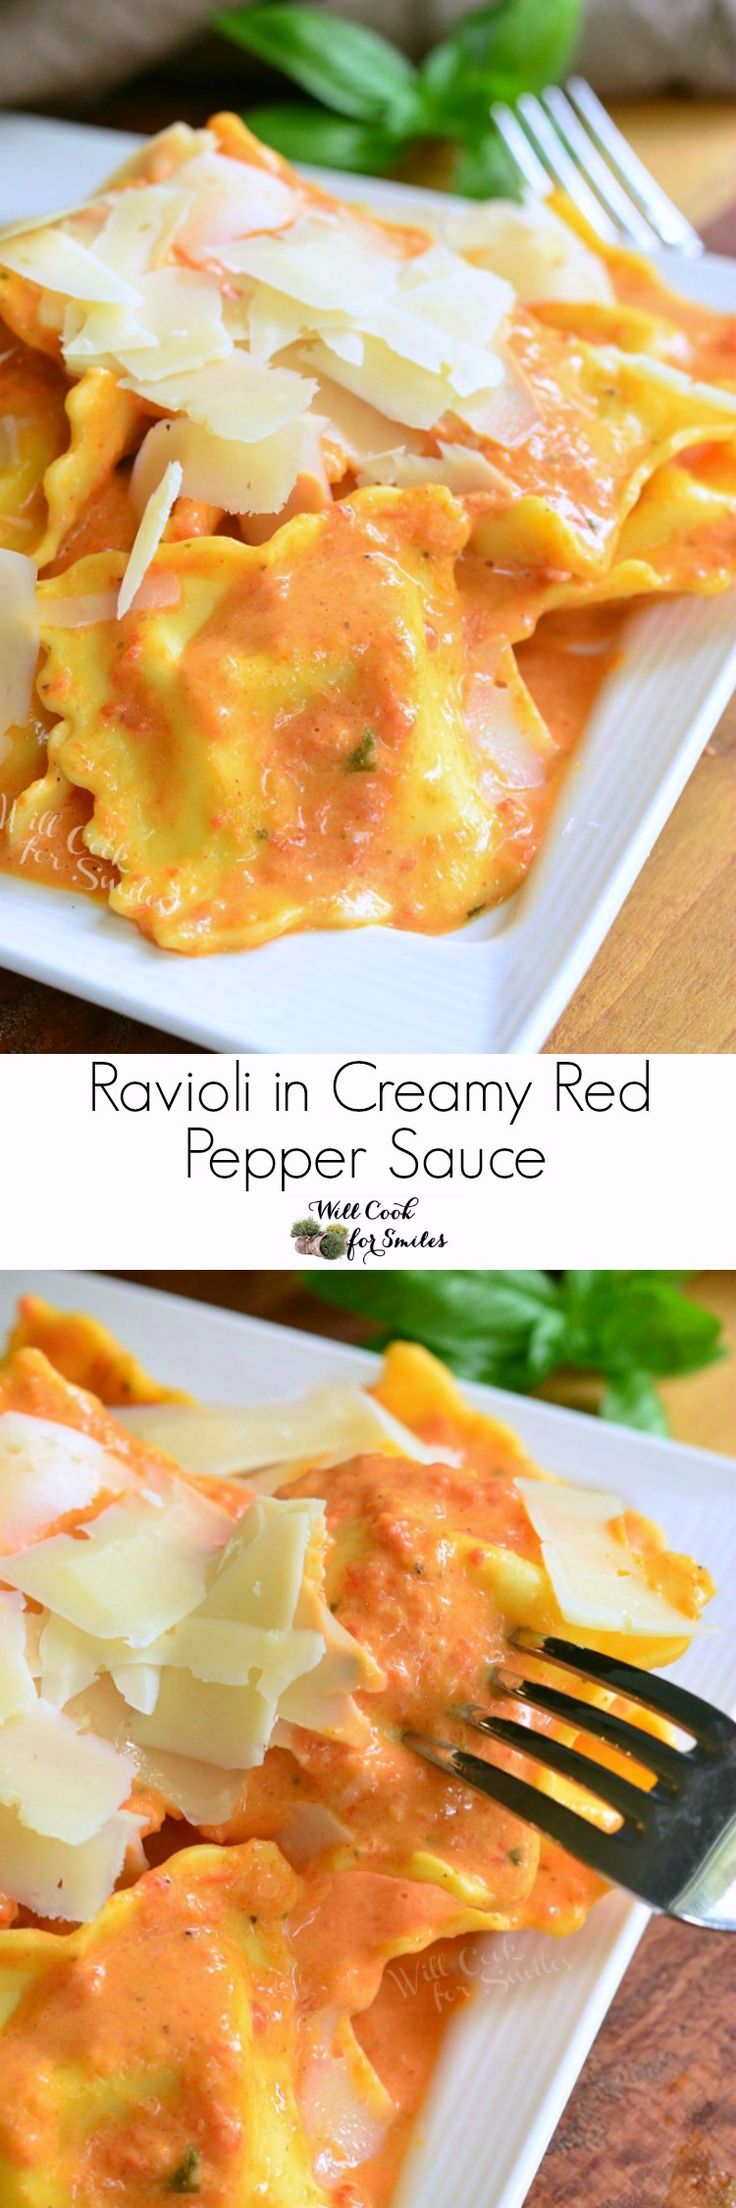 30 Minute Ravioli in Creamy Red Pepper Sauce. Ravioli in a creamy red bell pepper and basil sauce topped with shaved Parmesan cheese! Wonderful!!d